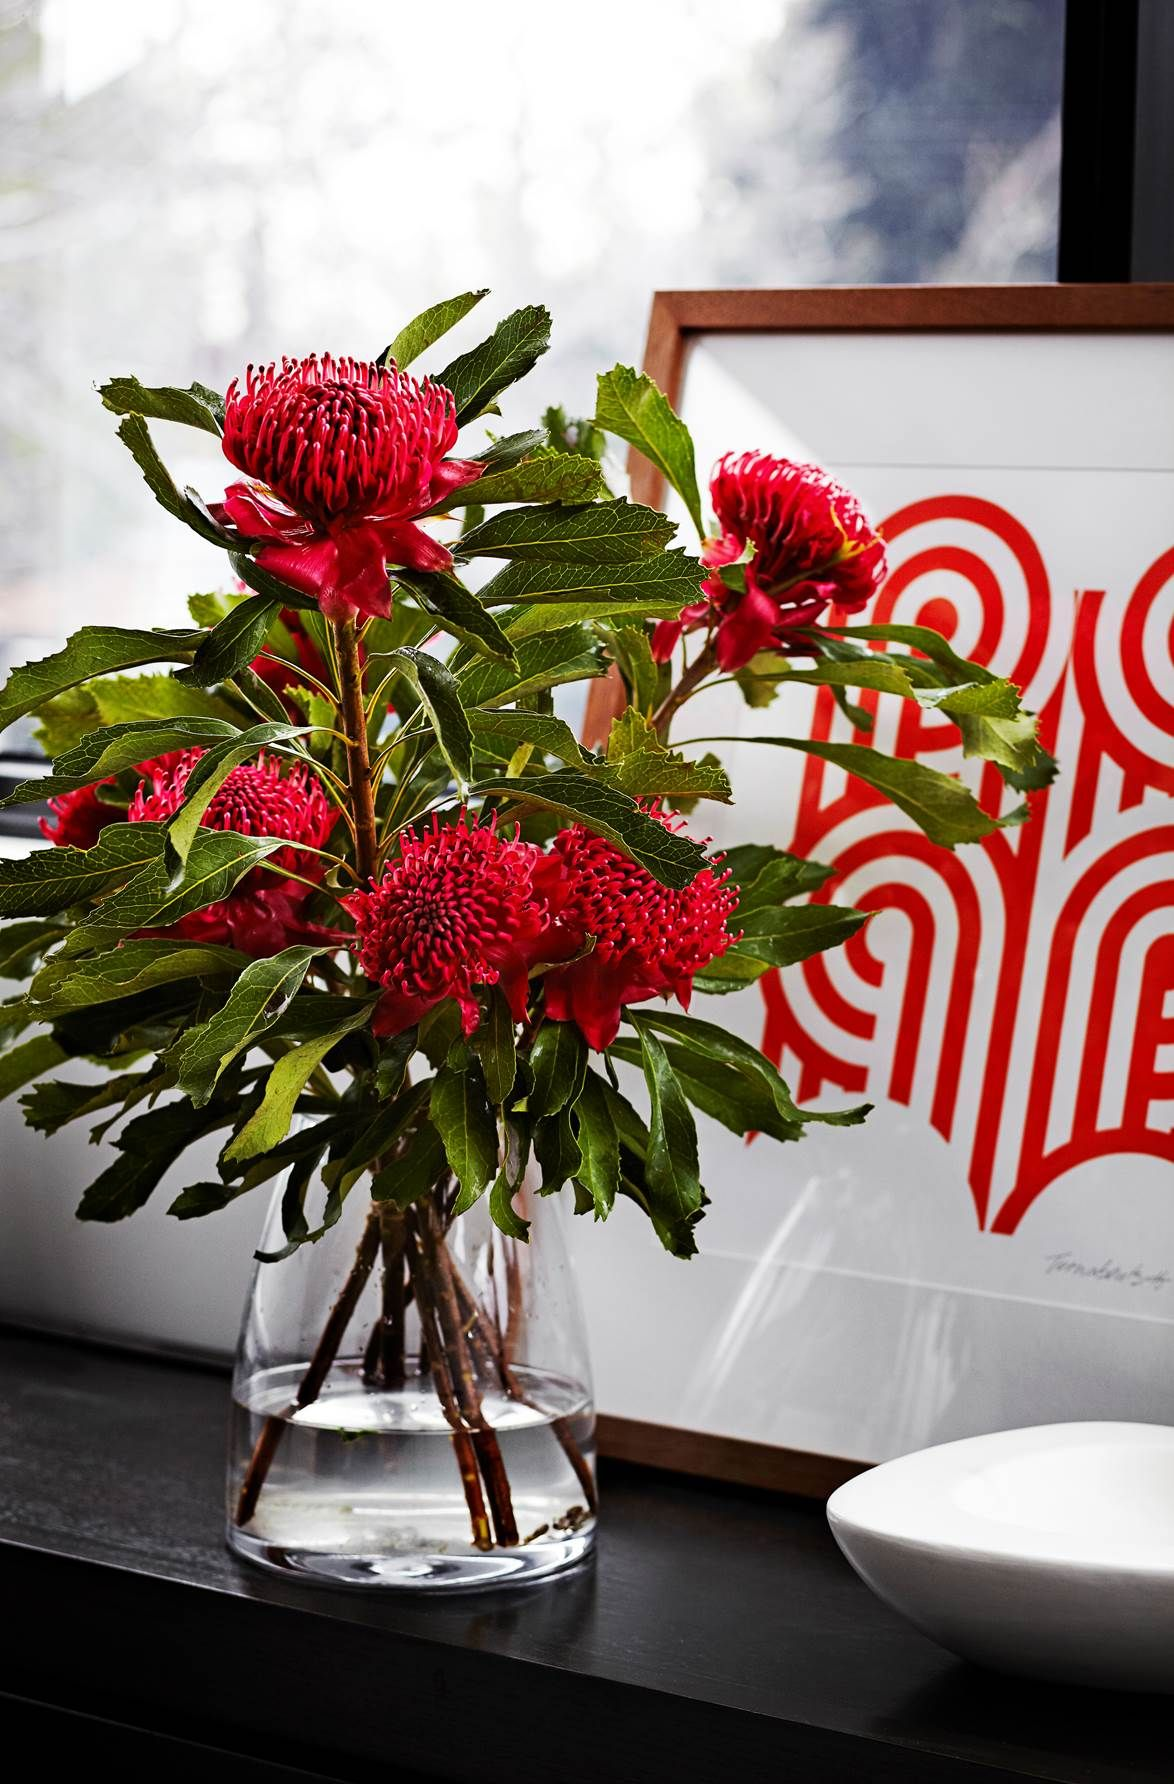 A Vase Of Red Waratahs Provides A Welcome Pop Of